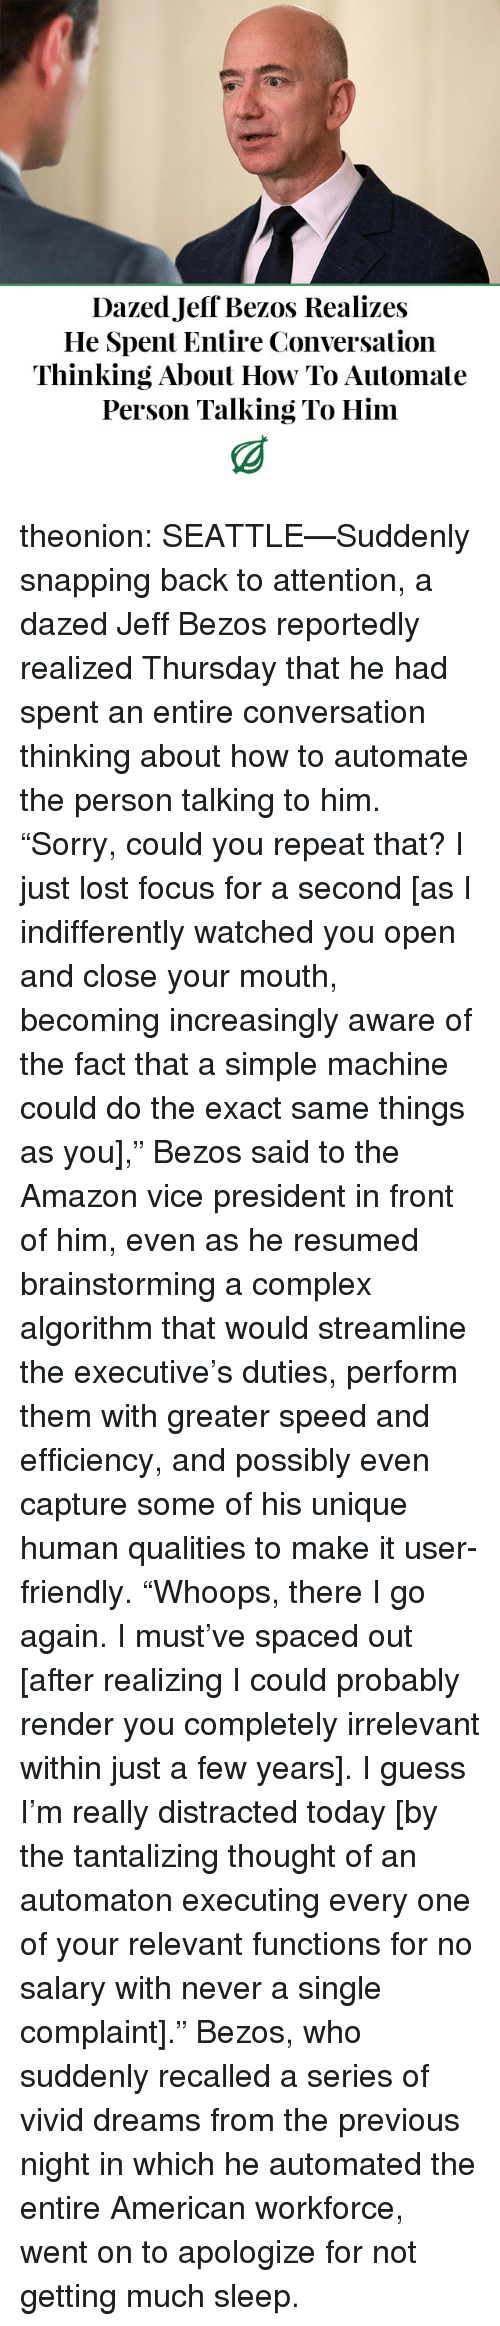 """vice president: Dazed Jeff Bezos Realizes  He Spent Entire Conversation  Thinking About How To Automate  Person Talking To Him theonion:  SEATTLE—Suddenly snapping back to attention, a dazed Jeff Bezos reportedly realized Thursday that he had spent an entire conversation thinking about how to automate the person talking to him. """"Sorry, could you repeat that? I just lost focus for a second [as I indifferently watched you open and close your mouth, becoming increasingly aware of the fact that a simple machine could do the exact same things as you],"""" Bezos said to the Amazon vice president in front of him, even as he resumed brainstorming a complex algorithm that would streamline the executive's duties, perform them with greater speed and efficiency, and possibly even capture some of his unique human qualities to make it user-friendly. """"Whoops, there I go again. I must've spaced out [after realizing I could probably render you completely irrelevant within just a few years]. I guess I'm really distracted today [by the tantalizing thought of an automaton executing every one of your relevant functions for no salary with never a single complaint]."""" Bezos, who suddenly recalled a series of vivid dreams from the previous night in which he automated the entire American workforce, went on to apologize for not getting much sleep."""